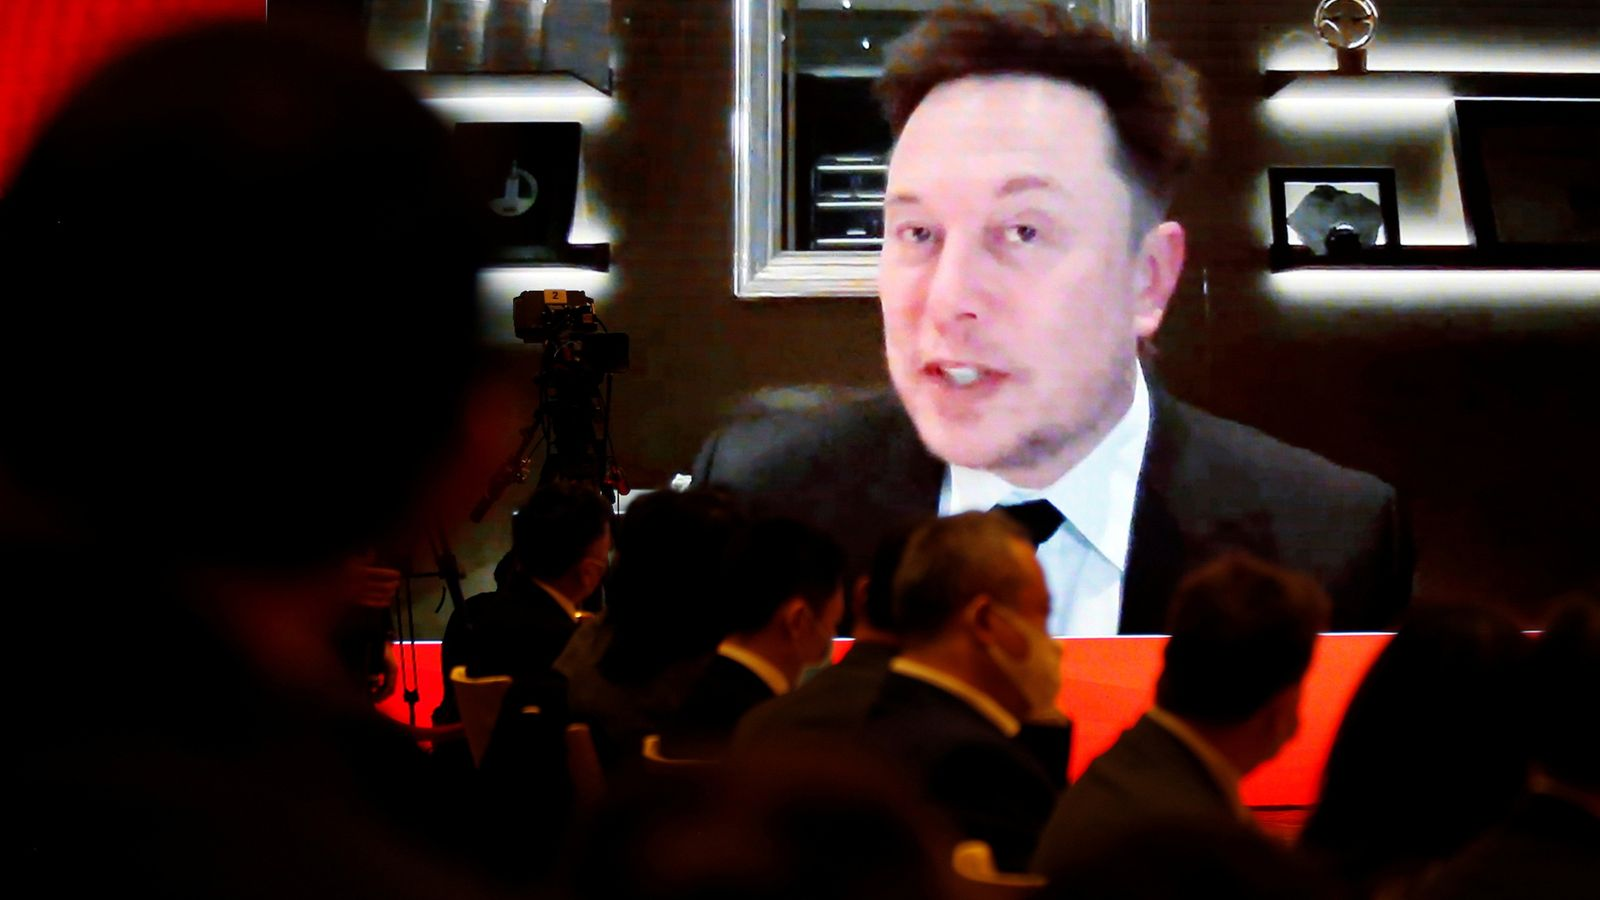 'If Tesla uses its cars to spy, we'll get shut down' – Musk responds to Chinese military's fears